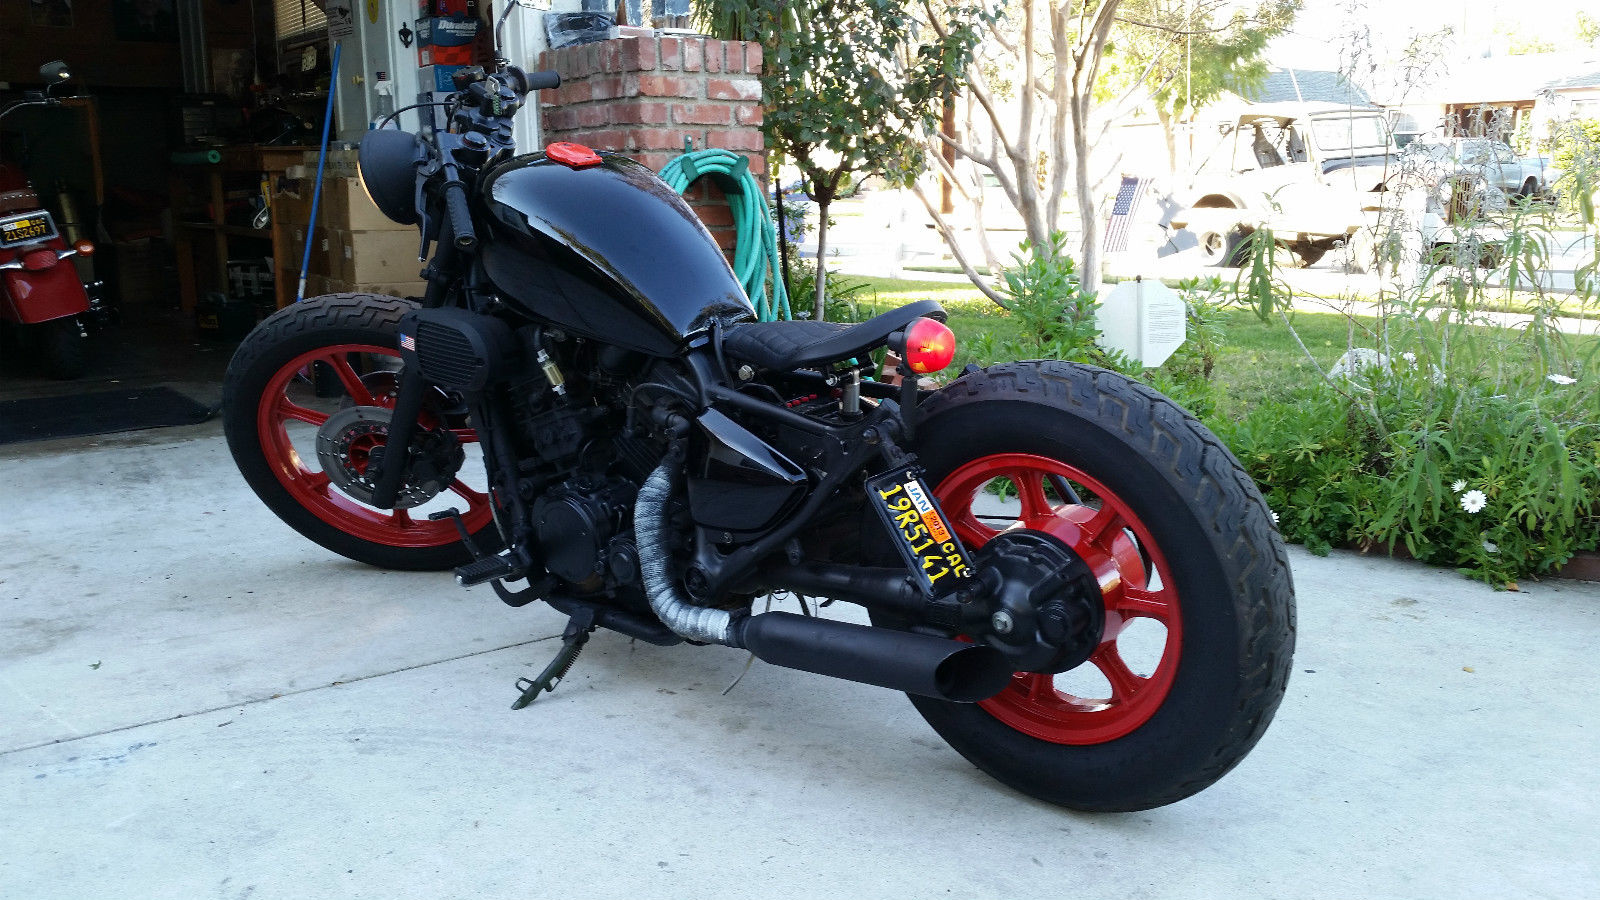 Kawasaki Vn Drifter further Kawasaki Vulcan Bobber Xlnt Condition Runs Amazing furthermore Kawasaki Vulcan Drifter also Vn Vulcan Bobber Left Dozer Garage as well S L. on kawasaki vulcan 800 drifter